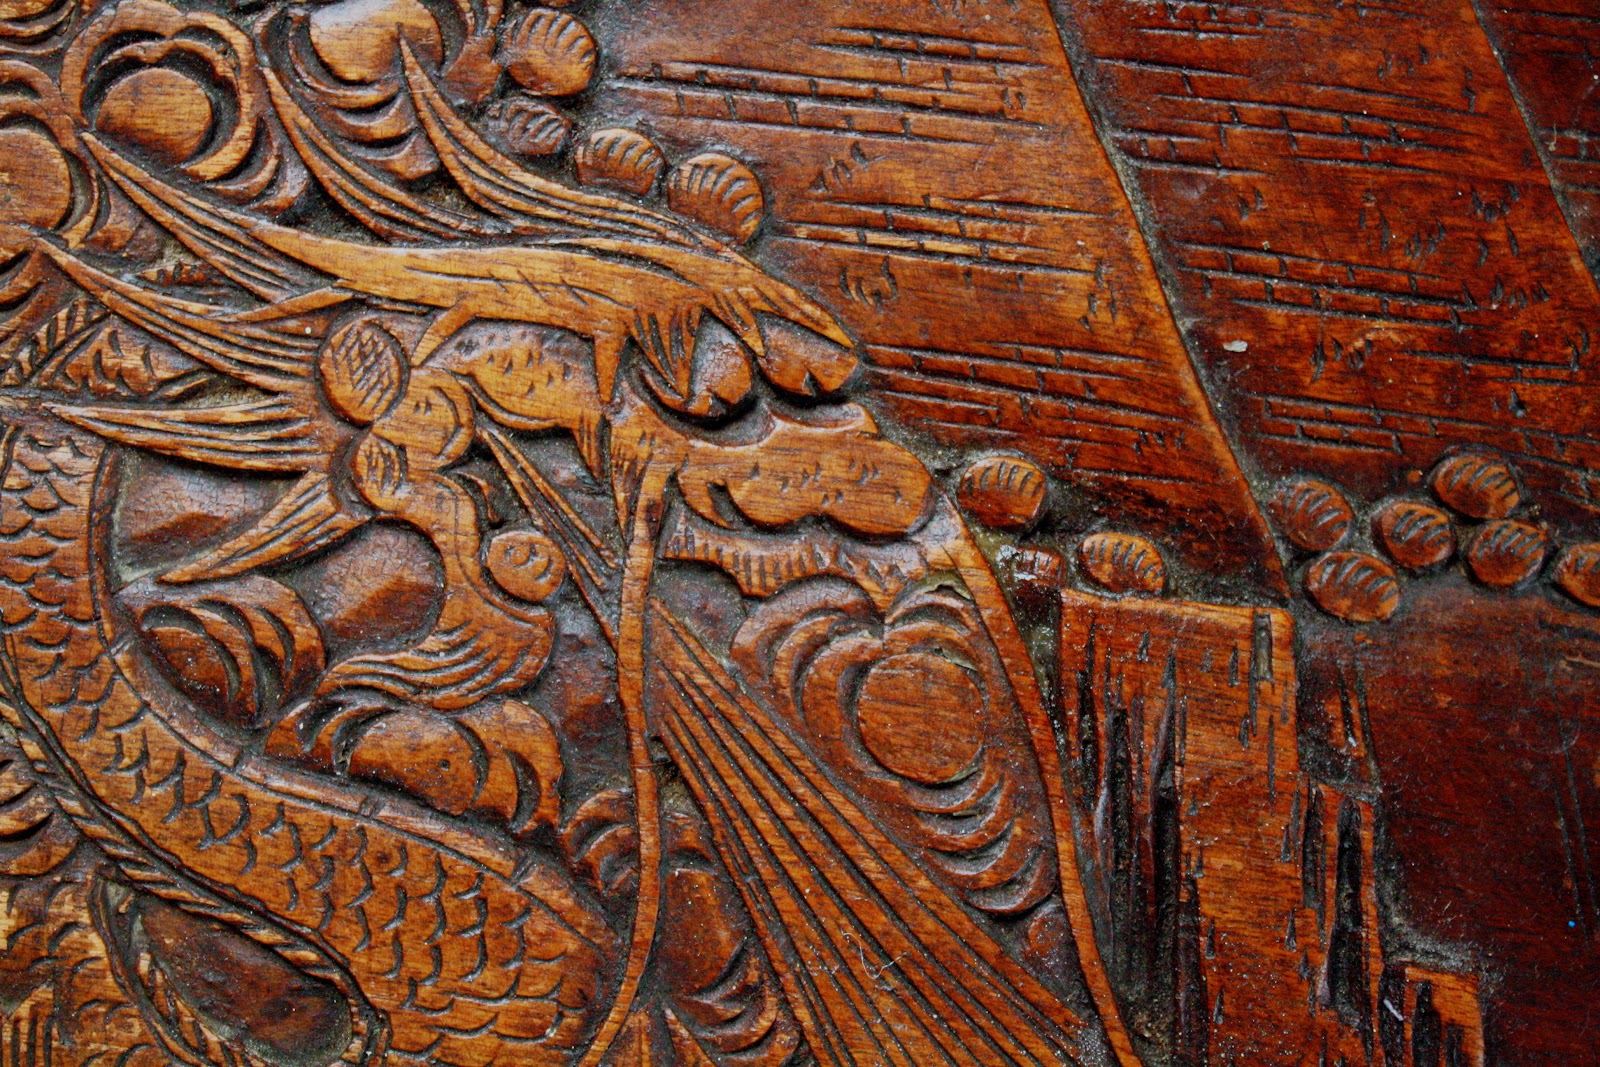 A dragon carved into the lid of a camphor wood chest.